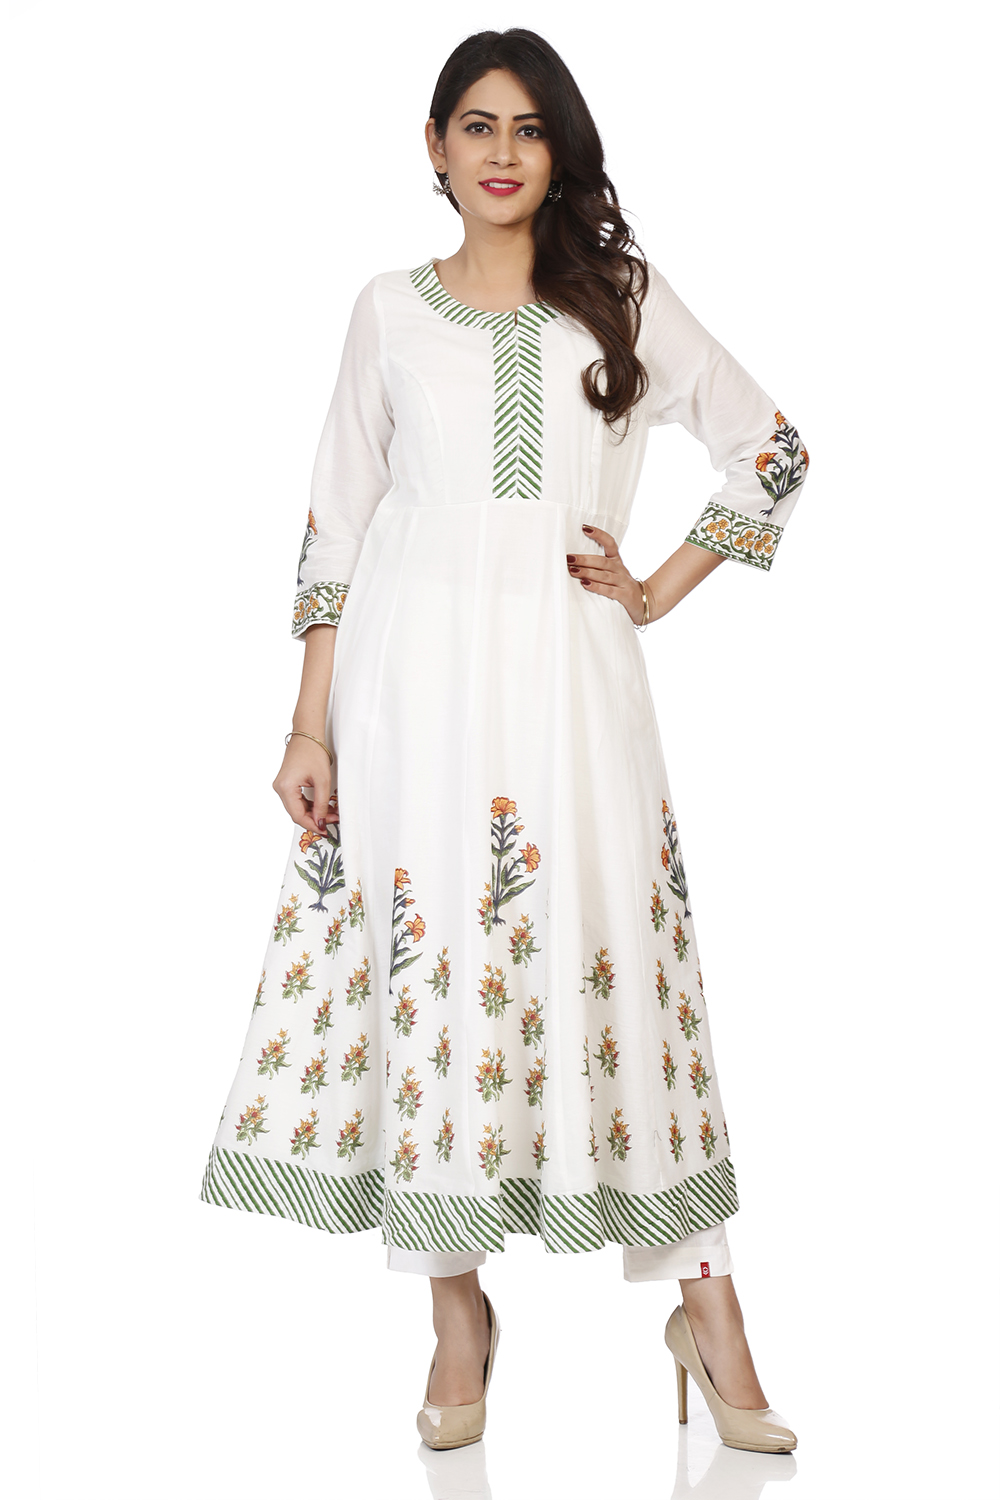 Get 40% off on Biba mix and match Tops Off White Cotton Kalidar Kurta featuring Round Neck, 3/4 sleeves and lining